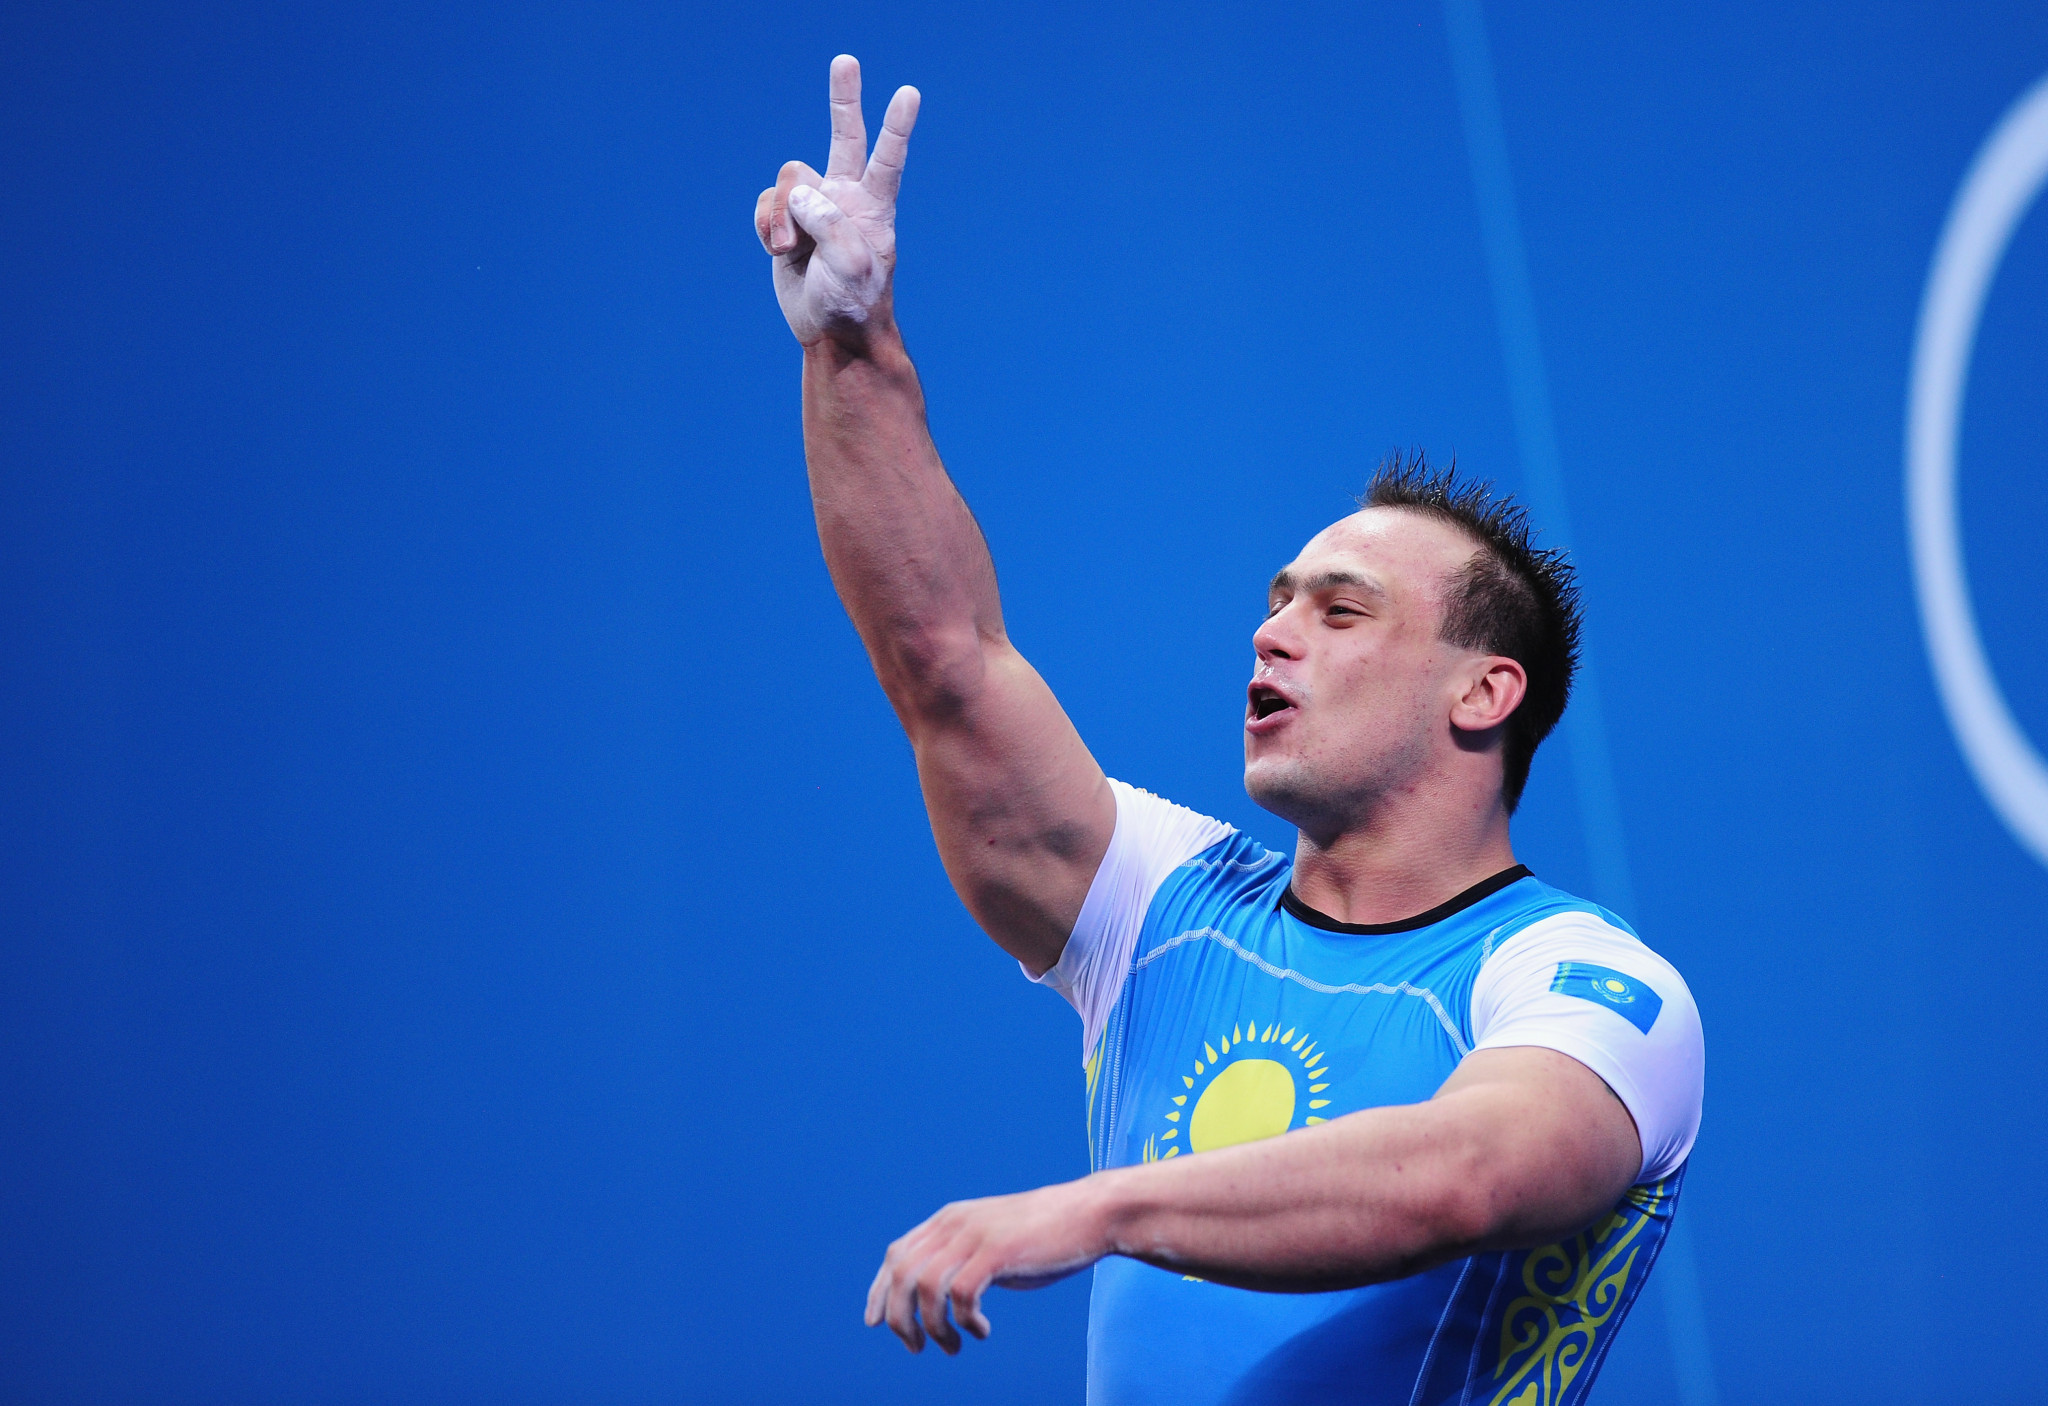 Ilya Ilyin will return to weightlifting in June and is aiming to compete at Tokyo 2020 ©Getty Images